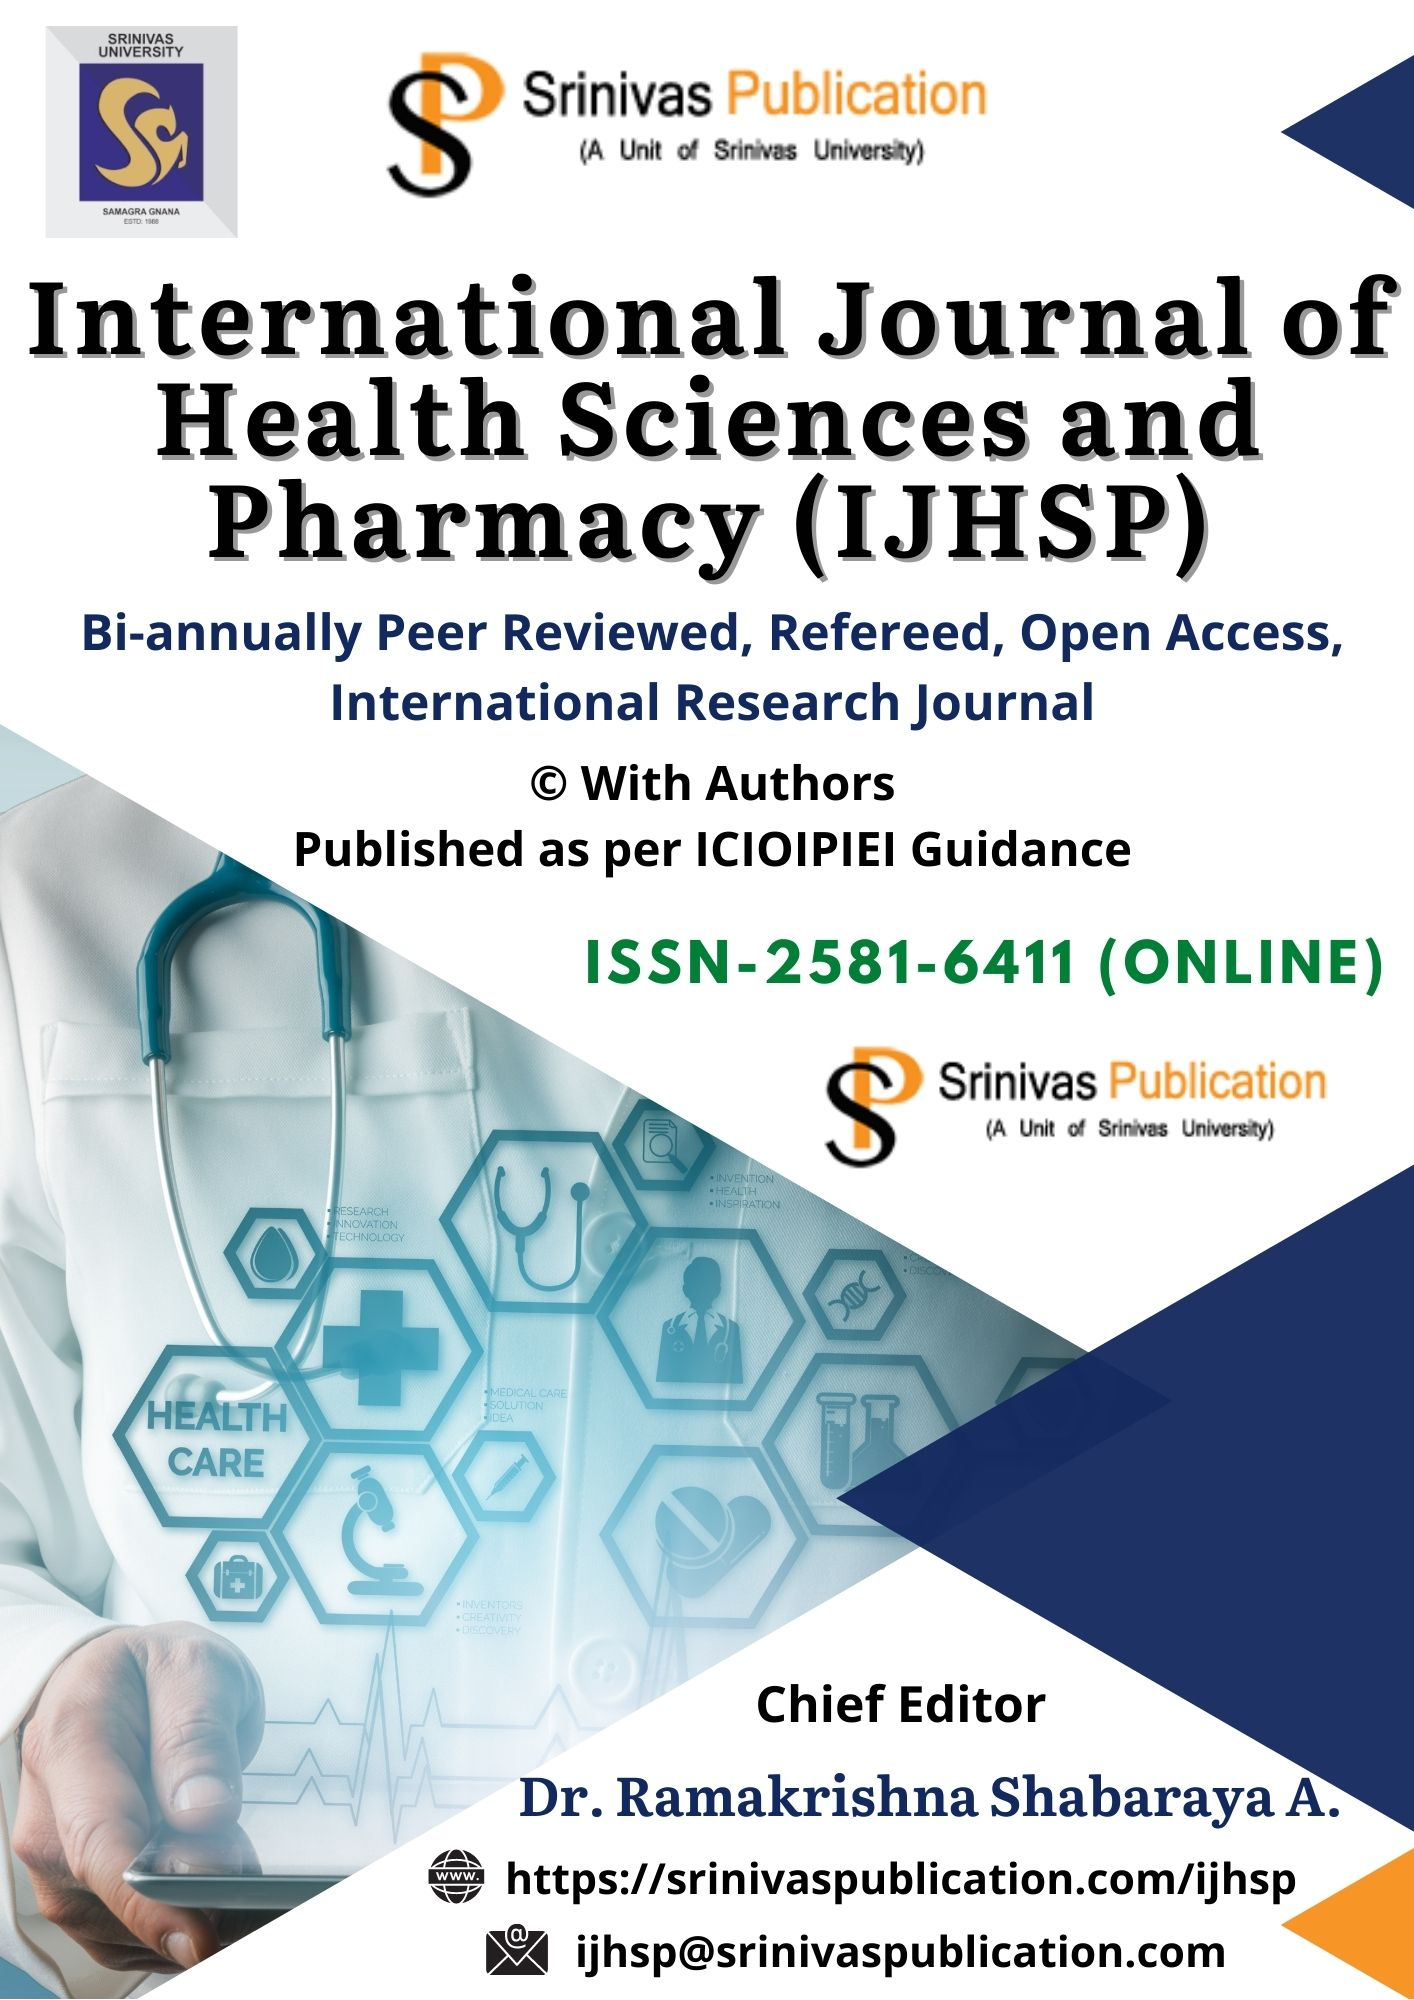 International Journal of Health Sciences and Pharmacy (IJHSP) is an international, not-for-profit, open-access bi-annual online Refereed journal that accepts research works from scholars, academicians, professors, doctorates, lecturers and corporate in their respective expertise of studies. The aim of IJHSP is to publish peer reviewed research and review articles. The mission of this journal is to publish original contributions in its field to promote research in various disciplines. IJHSP aims to bring pure academic research and more practical publications.  So it covers the full range of research applied to various sciences that meet the future demands. All submitted articles should report original, previously unpublished (experimental or theoretical) research and results. All the submissions in the scope of IJHSP will be peer-reviewed. All submissions are also checked for plagiarism. The length of the manuscript must be between five (5) to twenty (20) journal pages excluding references.